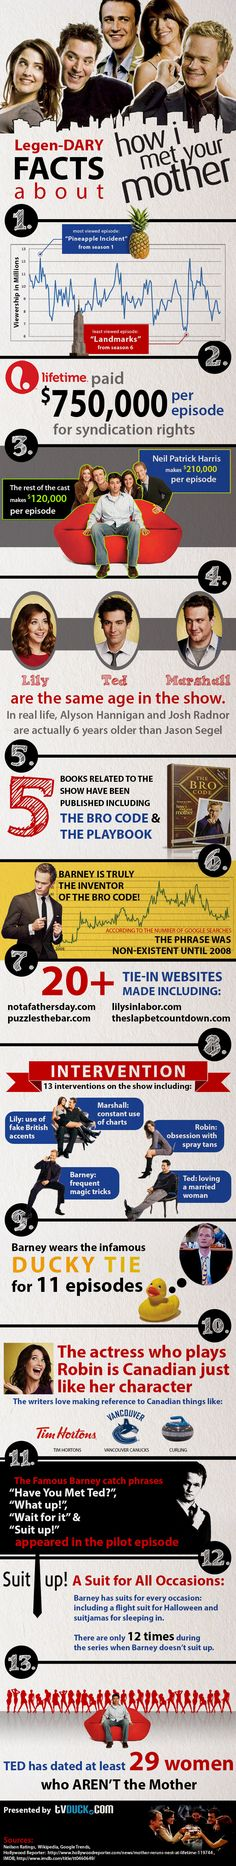 Factoids about The Bro Code and other happenings. [Facts About How I Met Your Mother]